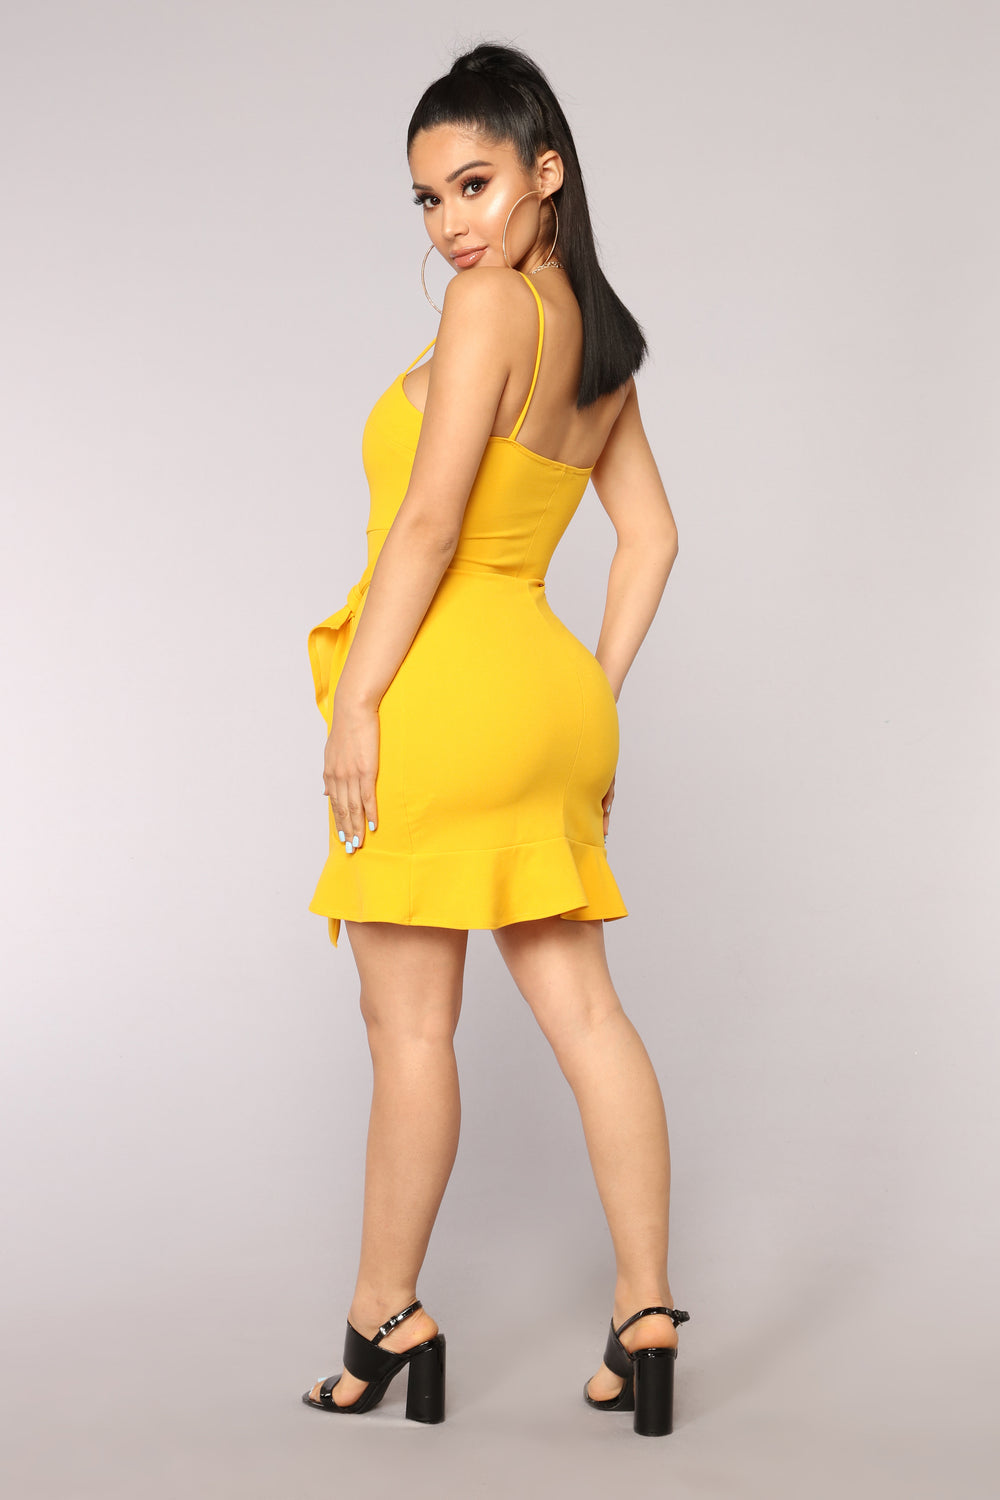 I'm What You Want Dress - Yellow